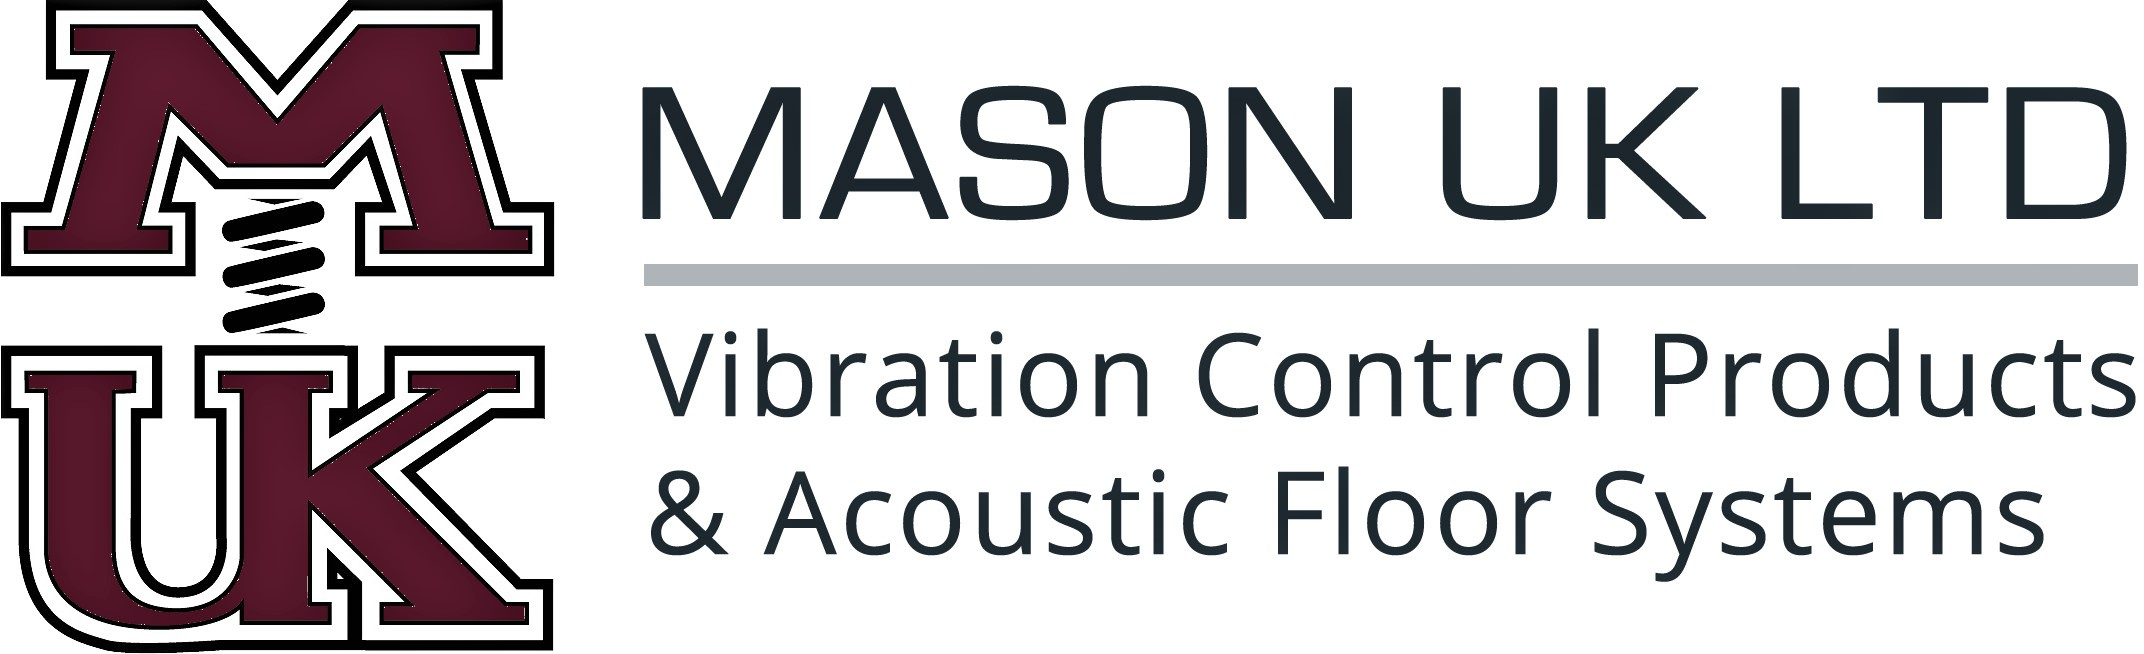 Find an acoustics specialist or supplier | ioa